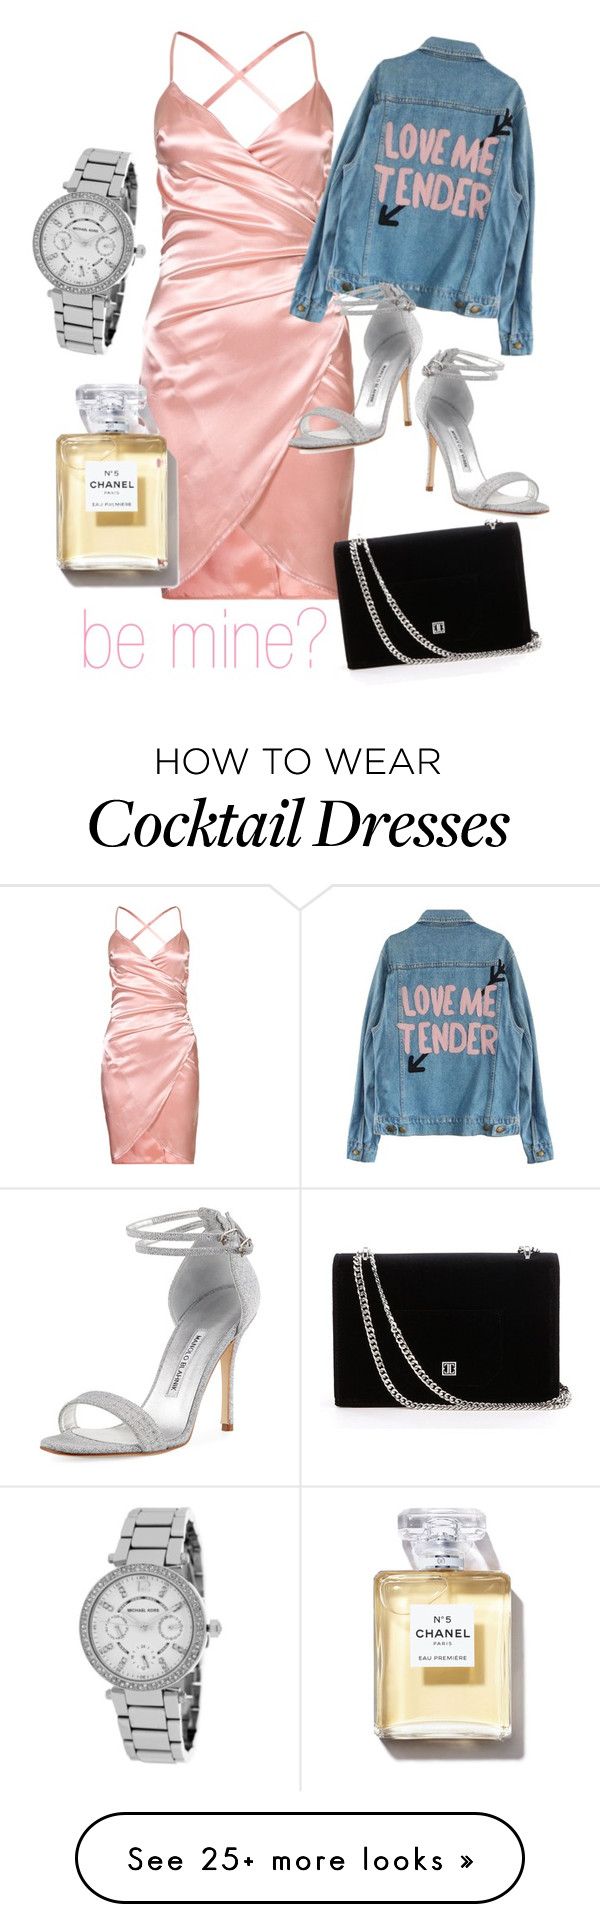 """""""Valentine's Day for Girls Who Slay"""" by rylee-bergere on Polyvore featuring Manolo Blahnik and Michael Kors"""